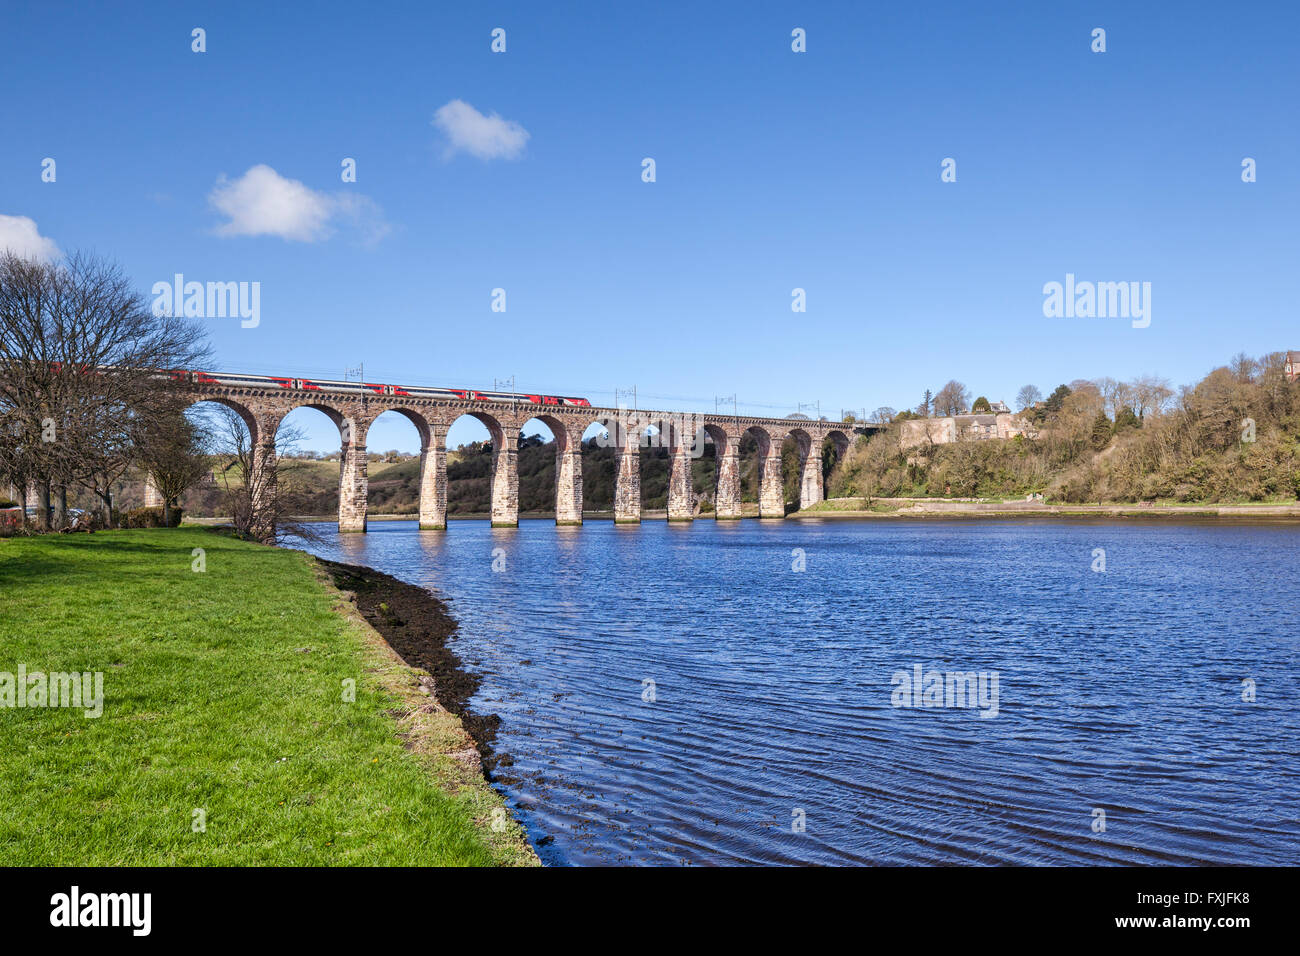 Virgin Train crossing the viaduct over the River Tweed at Berwick-upon-Tweed, Northumberland, England, UK - Stock Image